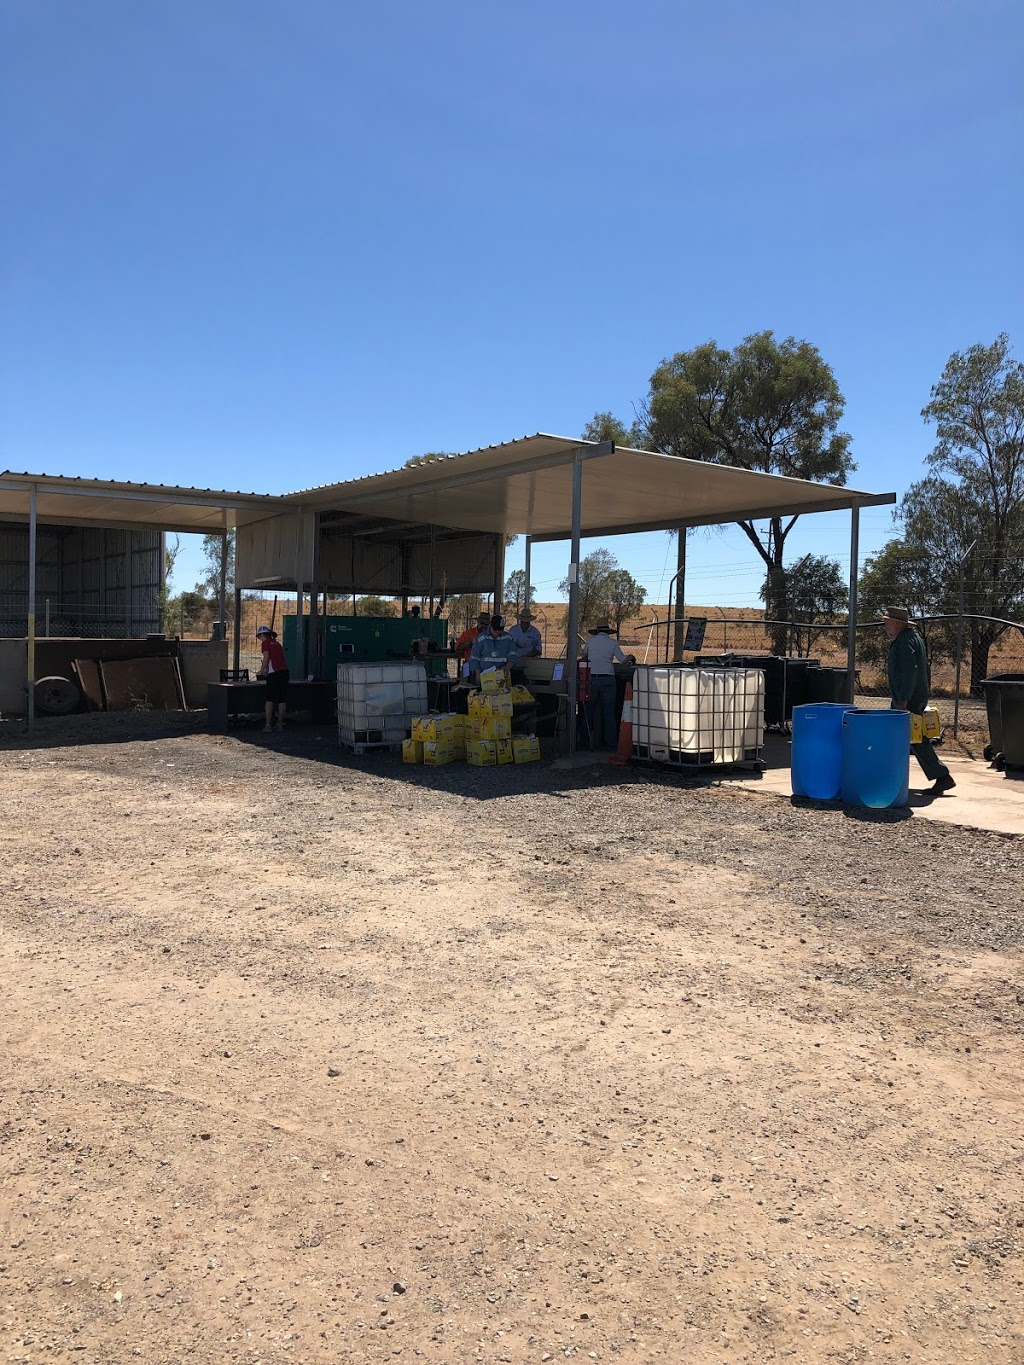 Containers for Change Roma | point of interest | 52-54 Spencer St, Roma QLD 4455, Australia | 134242 OR +61 134242